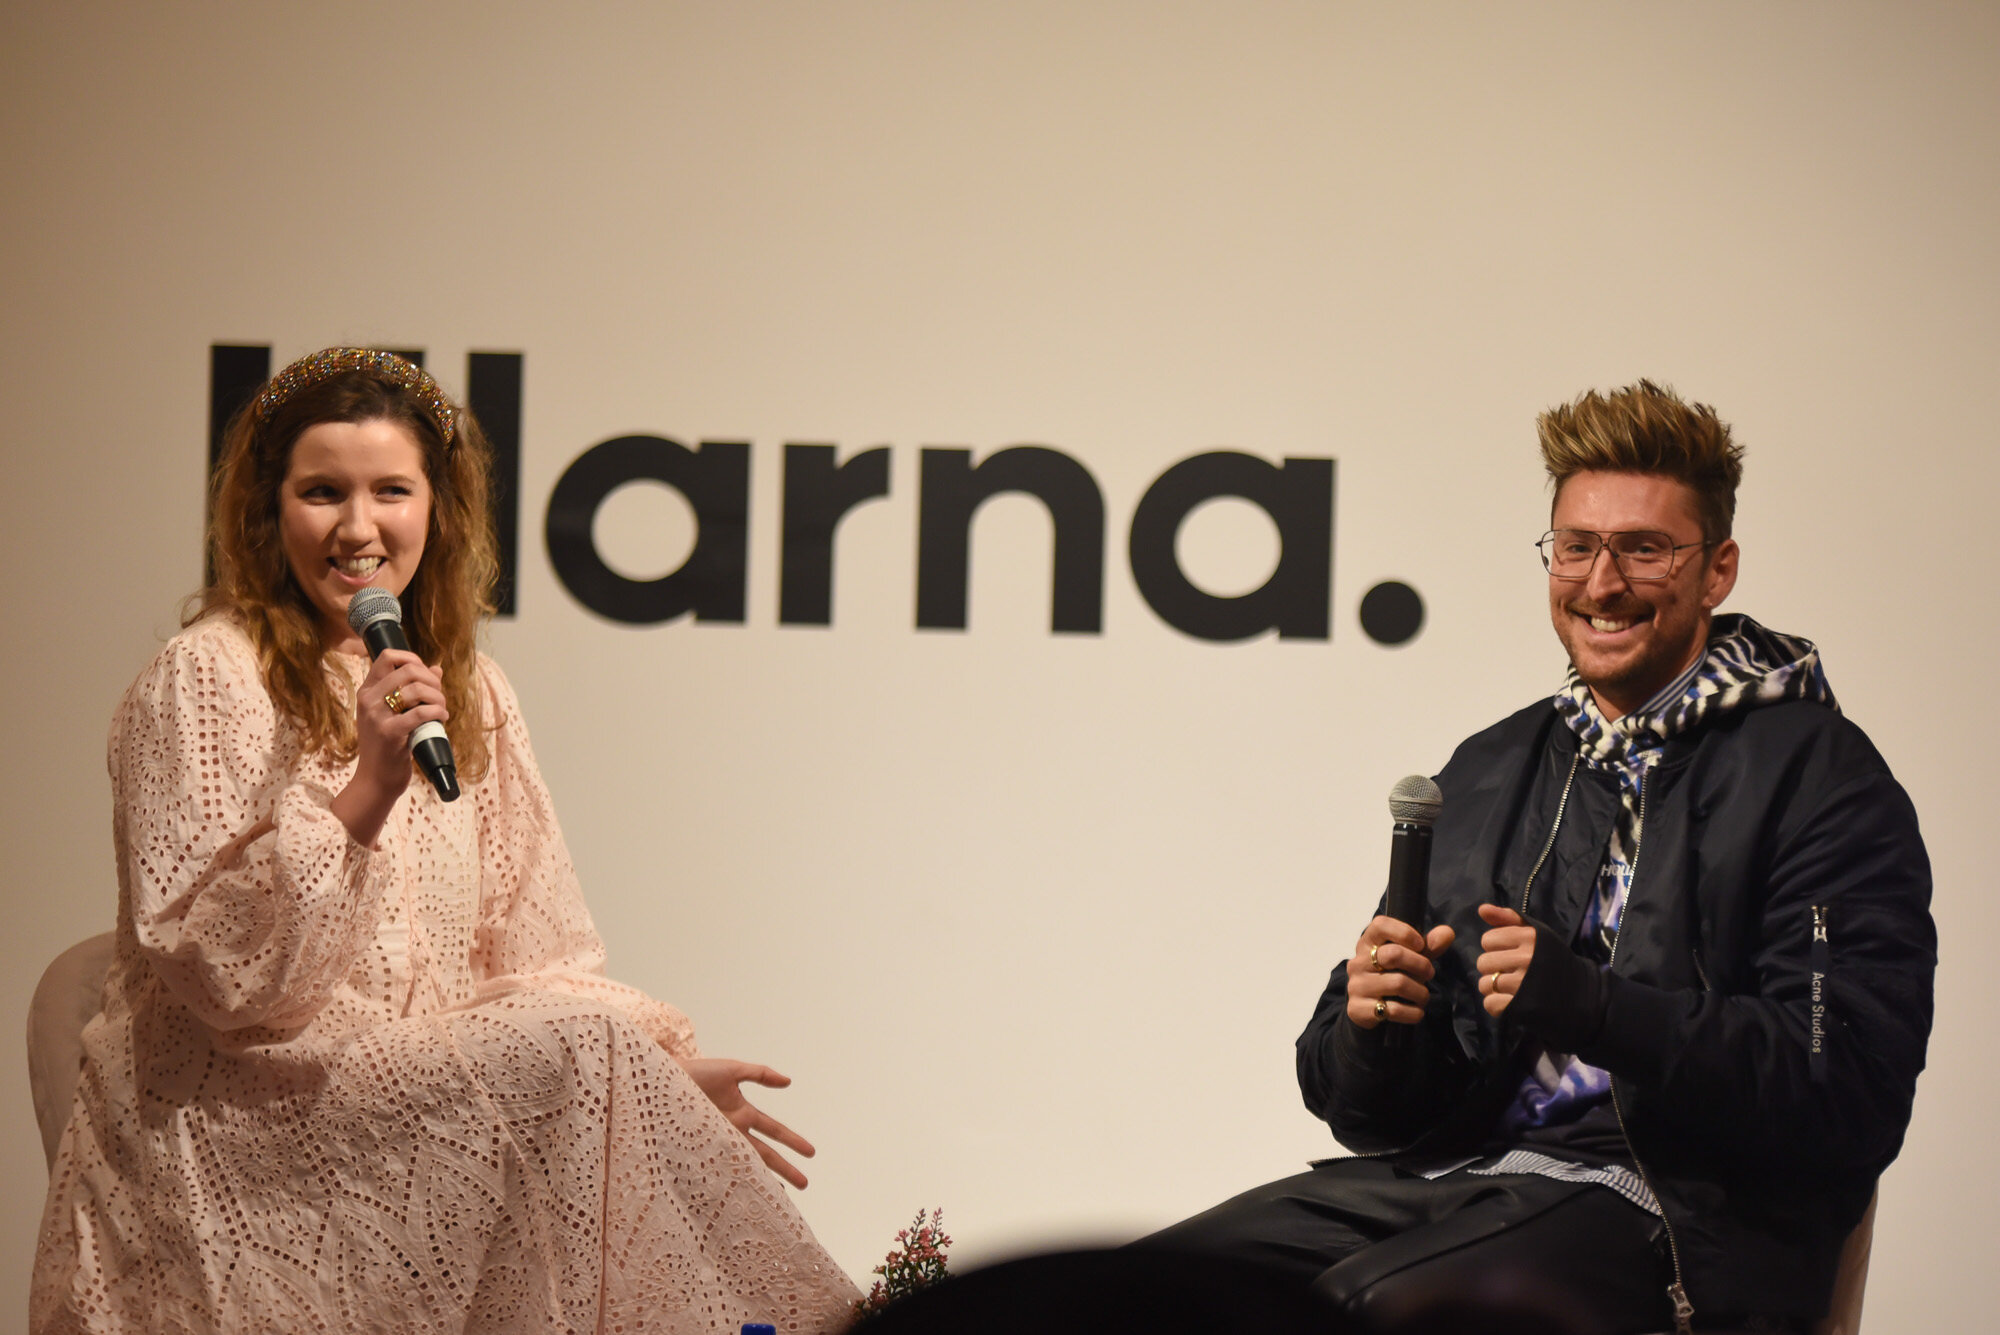 HouseOfKlarna_4th-52.jpg